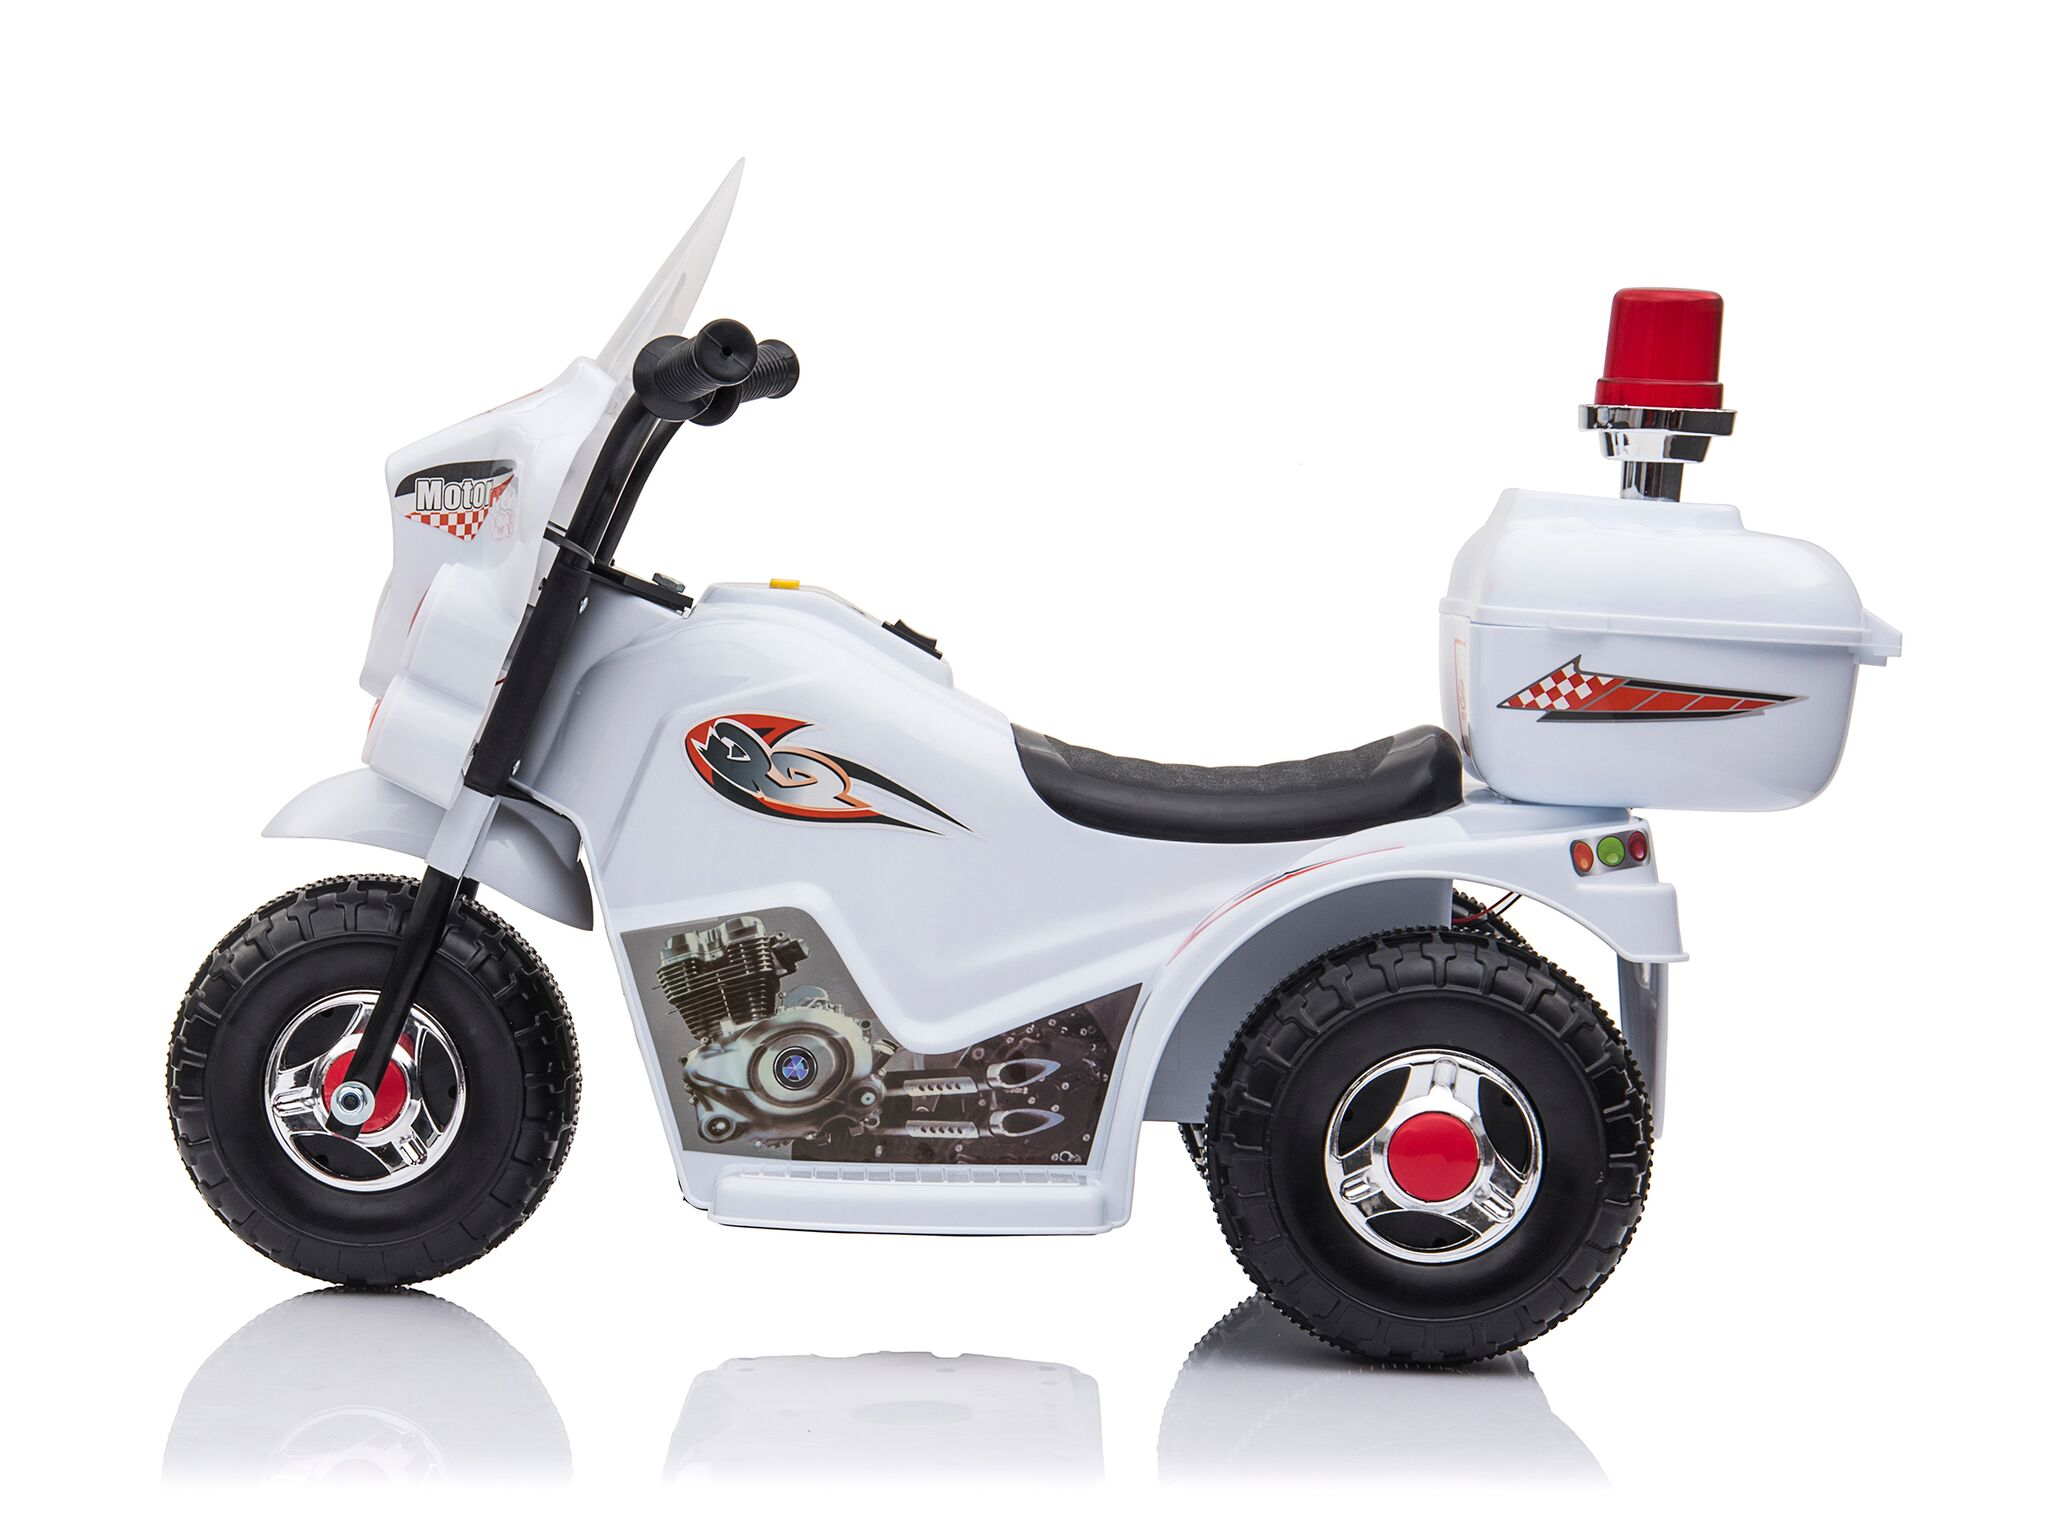 Kids-Ride-On-Motorbike-Motorcycle-Electric-Bike-Toy-Car-Trike-Battery-Red-White